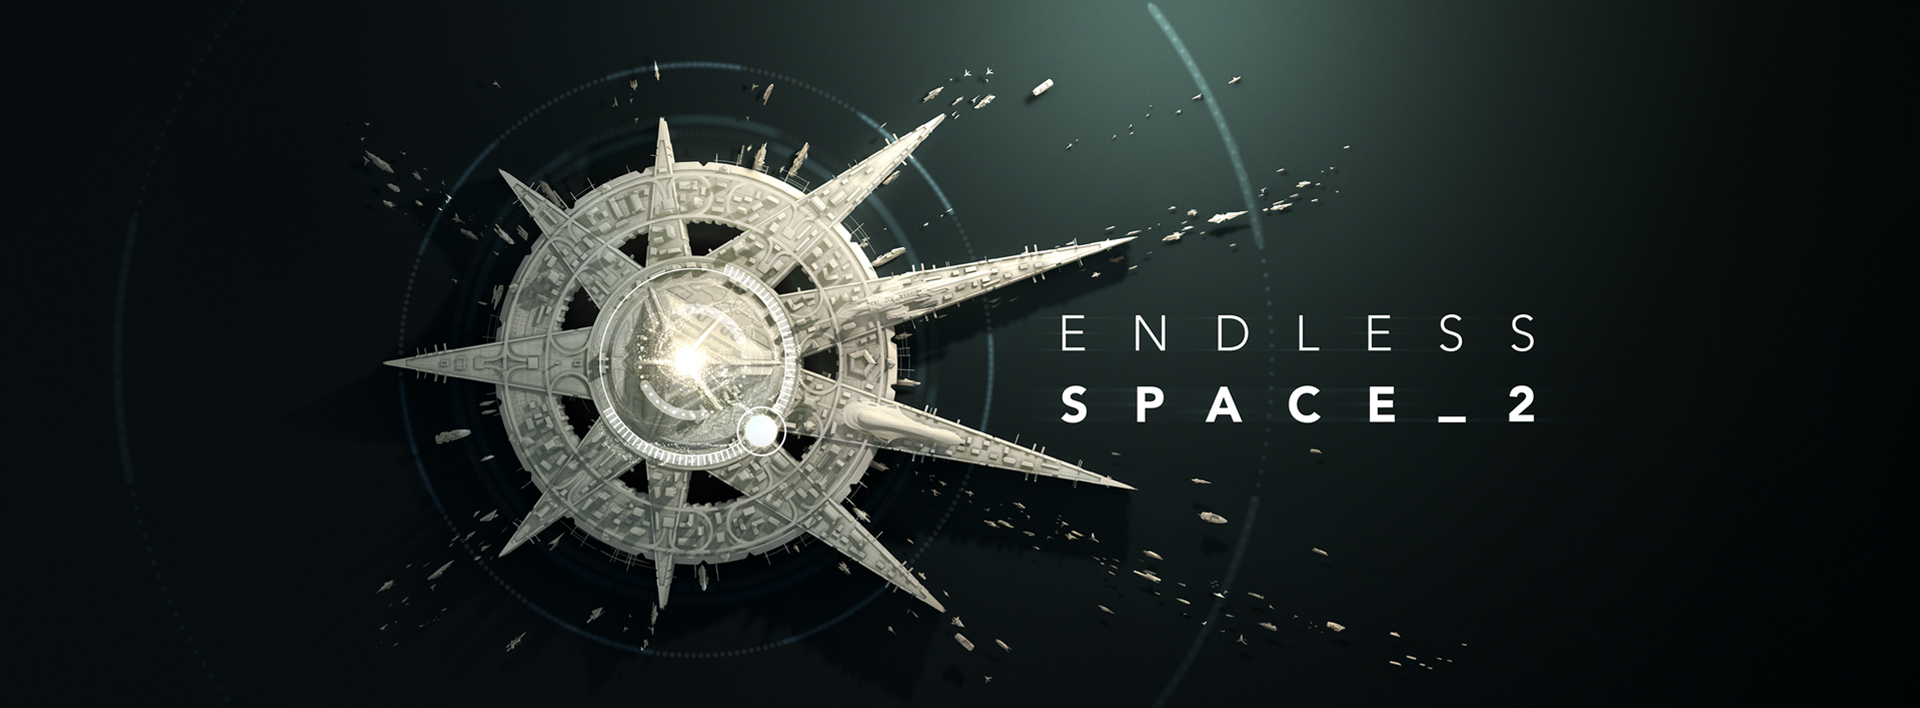 Endless Space 2 PC Game Review - Impulse Gamer